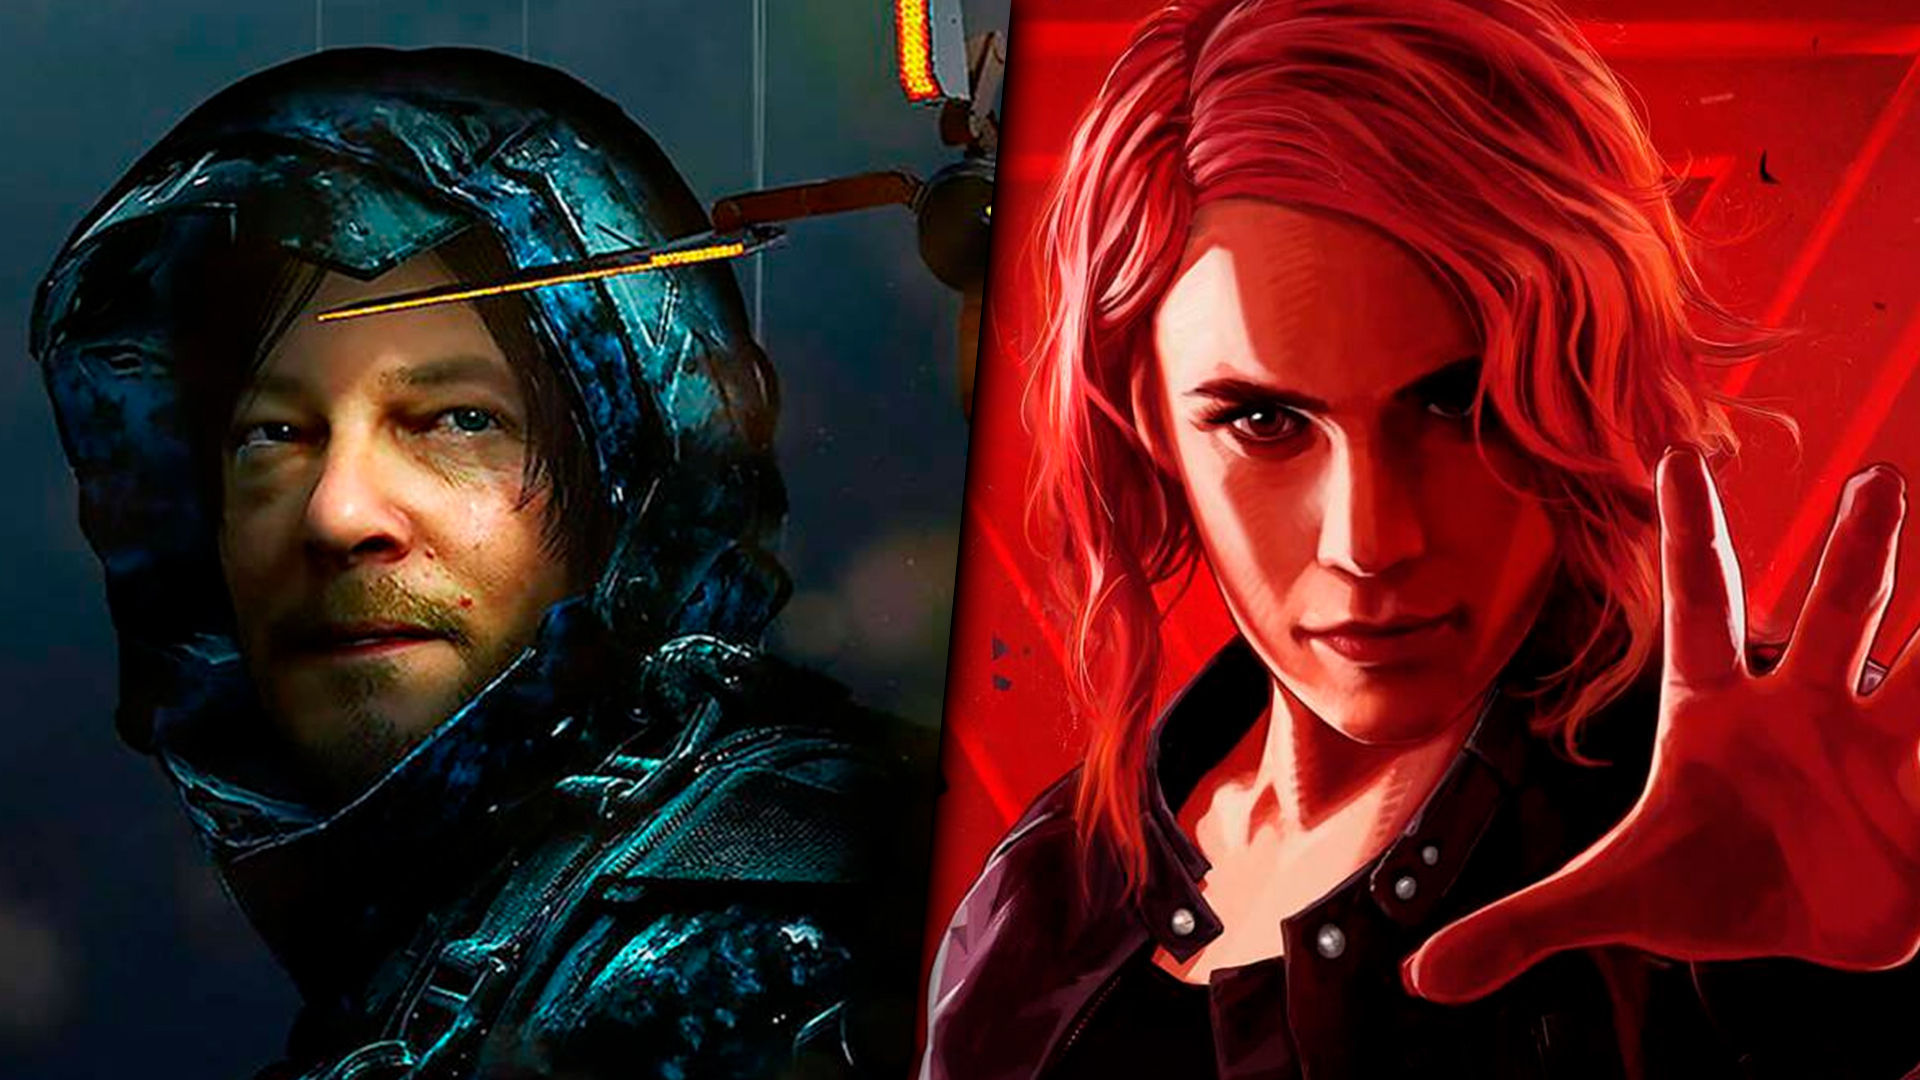 Death-Stranding and Control lead the nominations in the SAID Awards